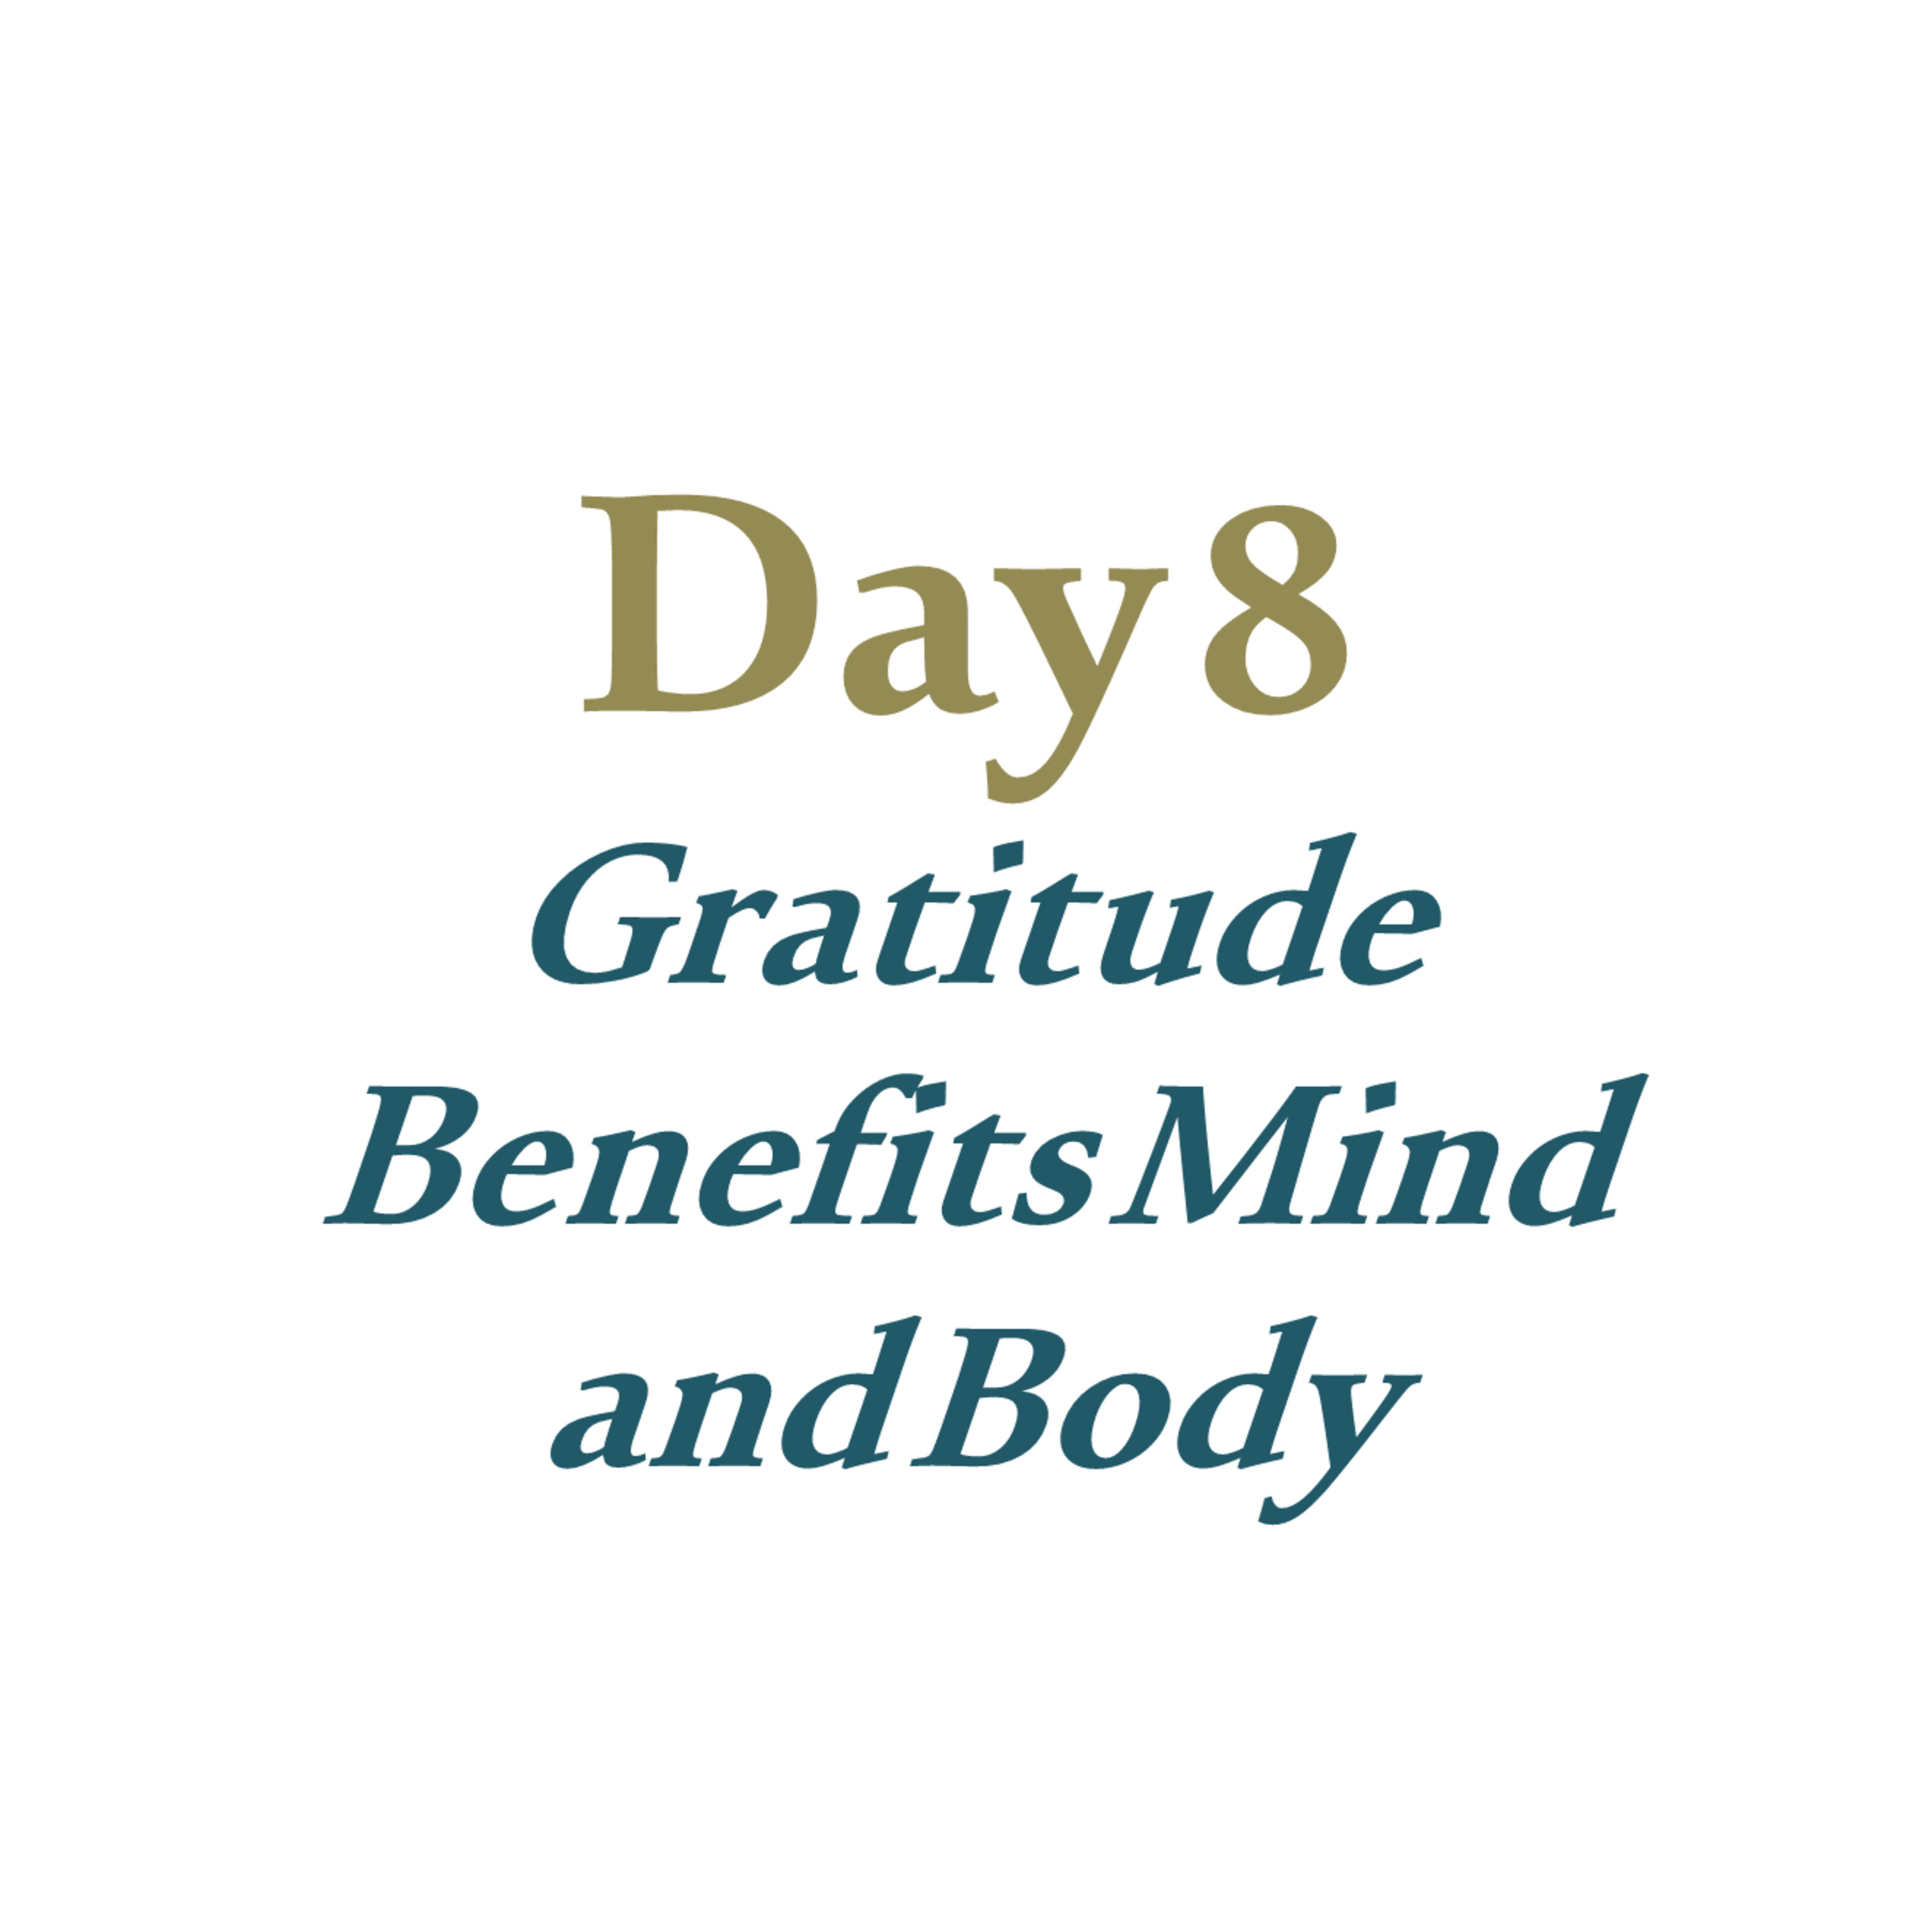 Day 8 - Gratitude Benefits Mind and Body